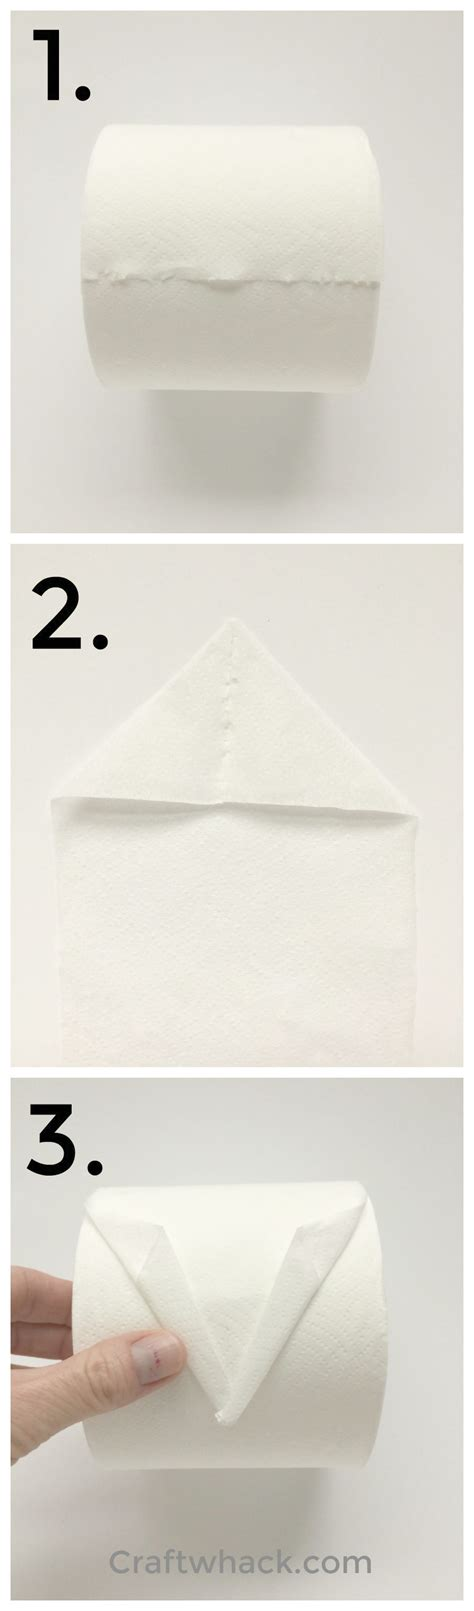 How To Fold Toilet Paper Fancy - ahoy learn to fold a toilet paper origami sailboat